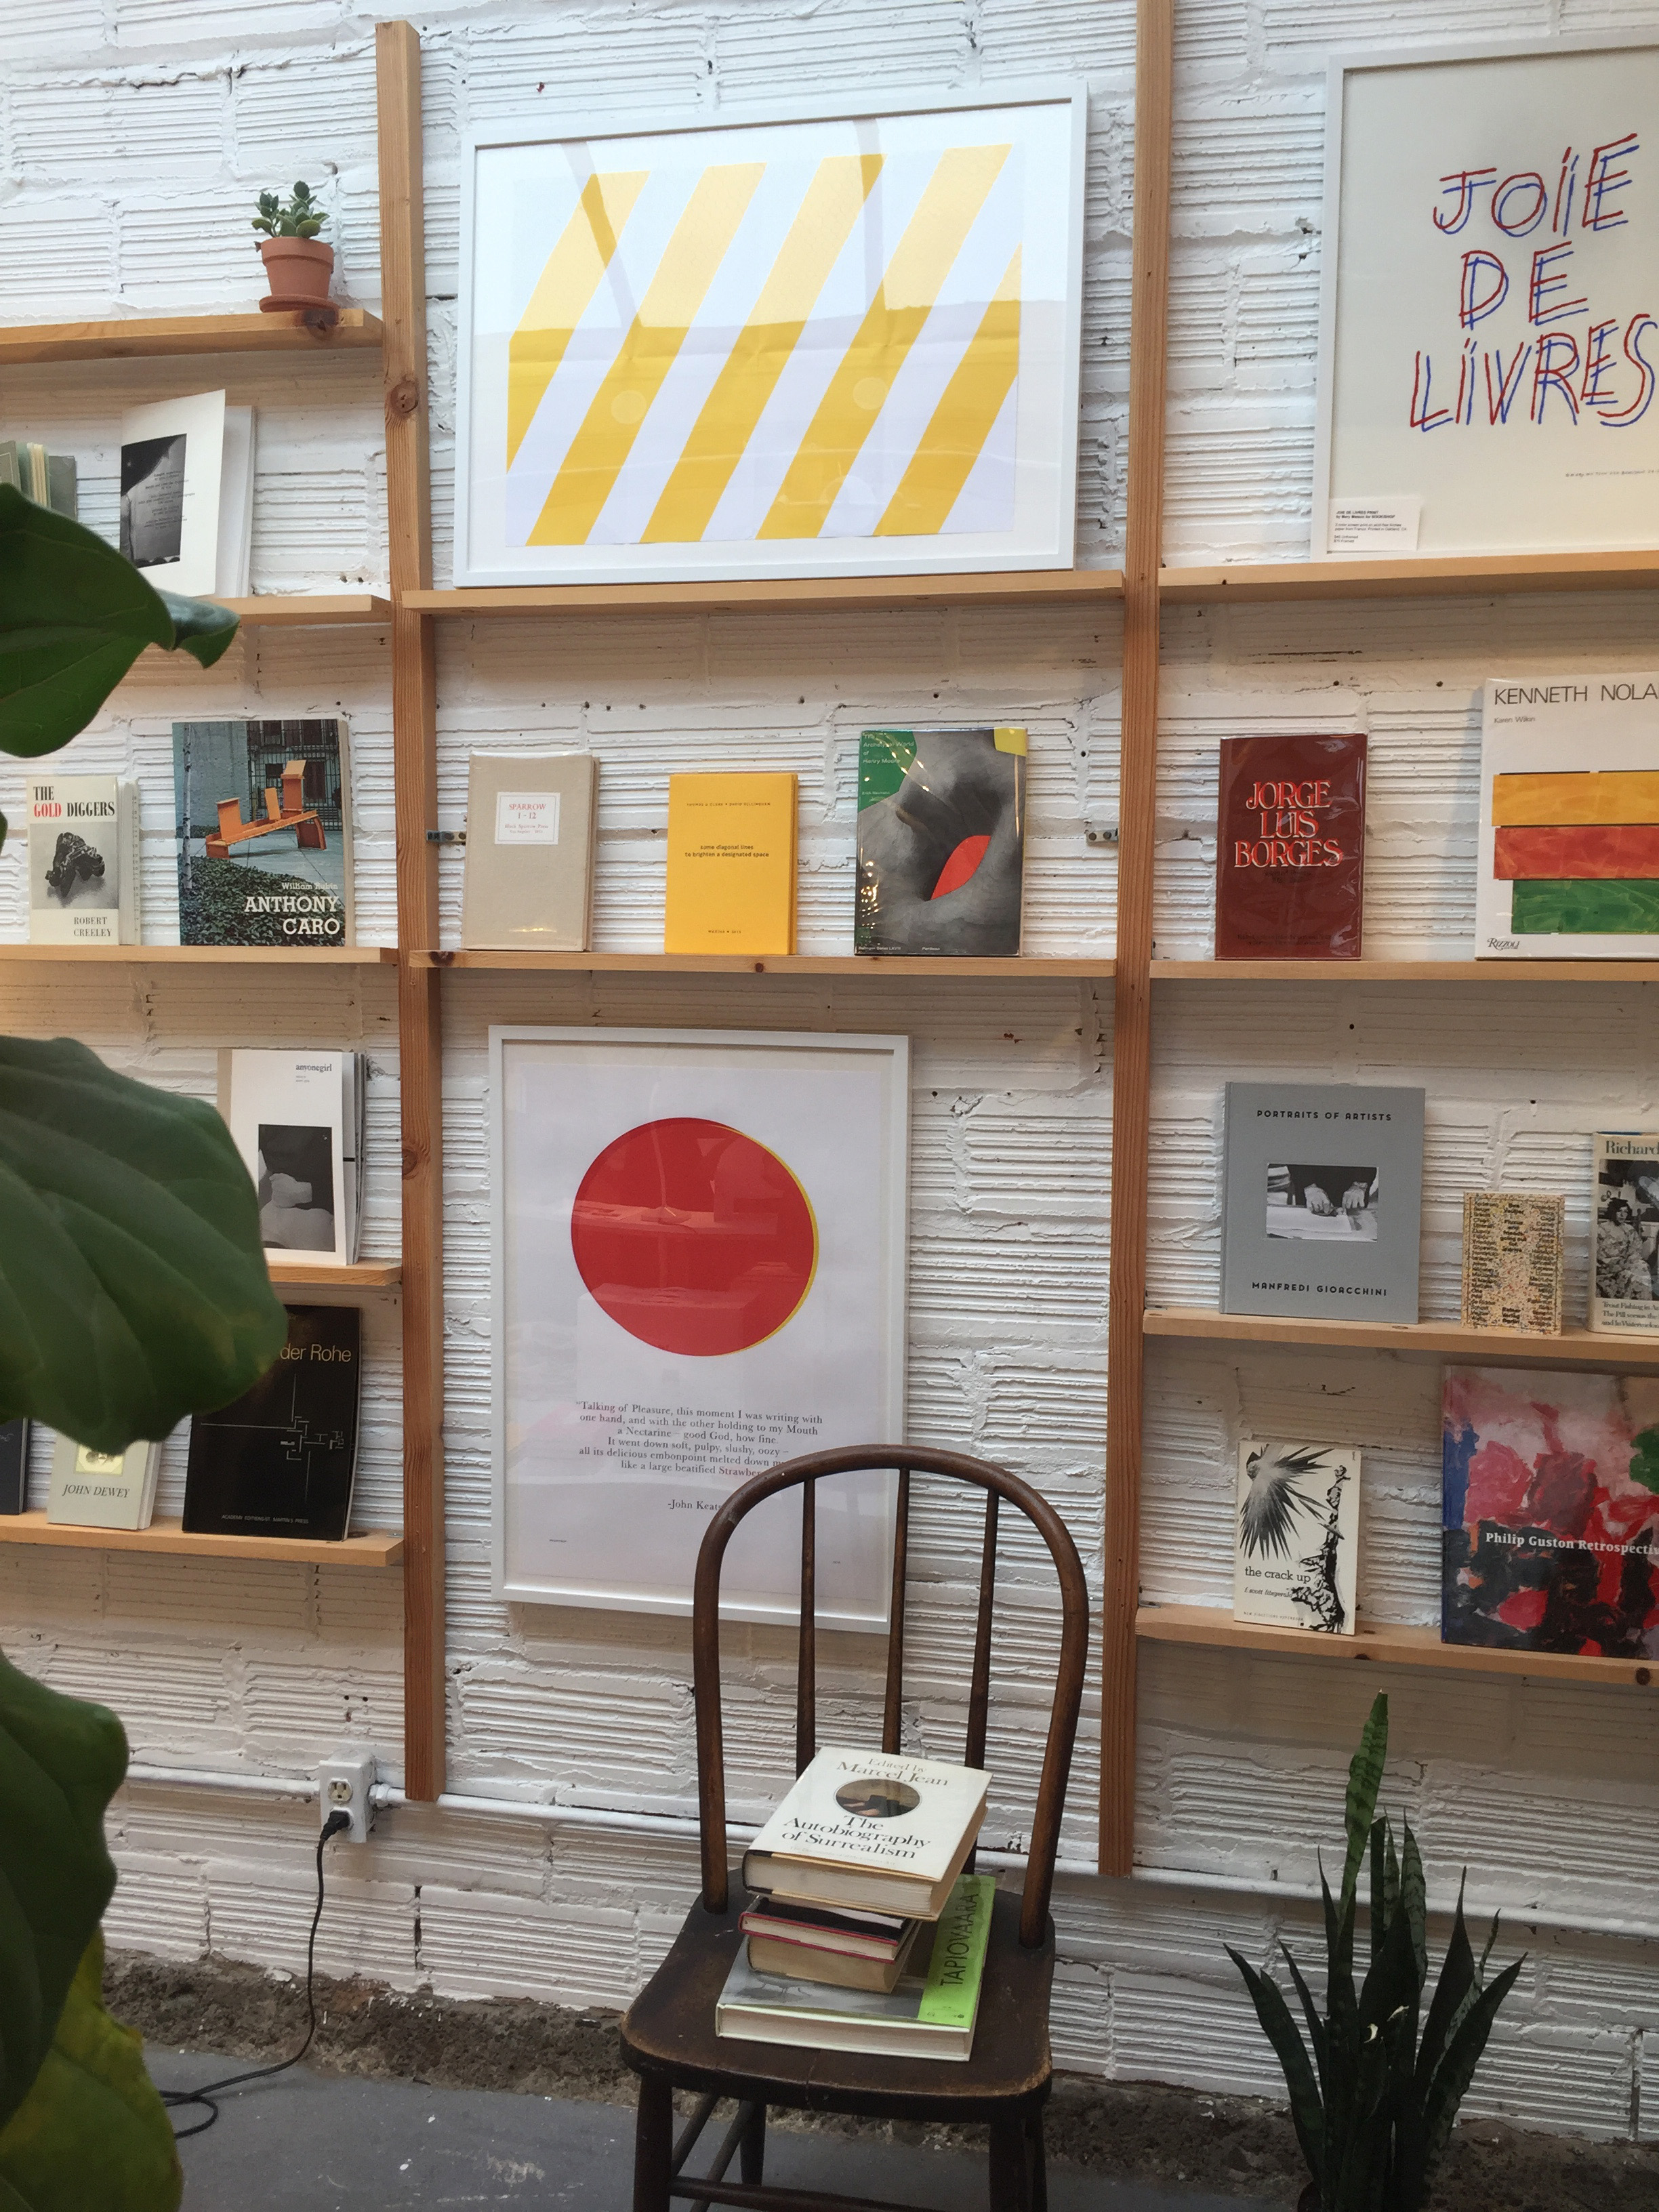 The  book shop of all book stores. A must for book lovers, designers and dreamers.